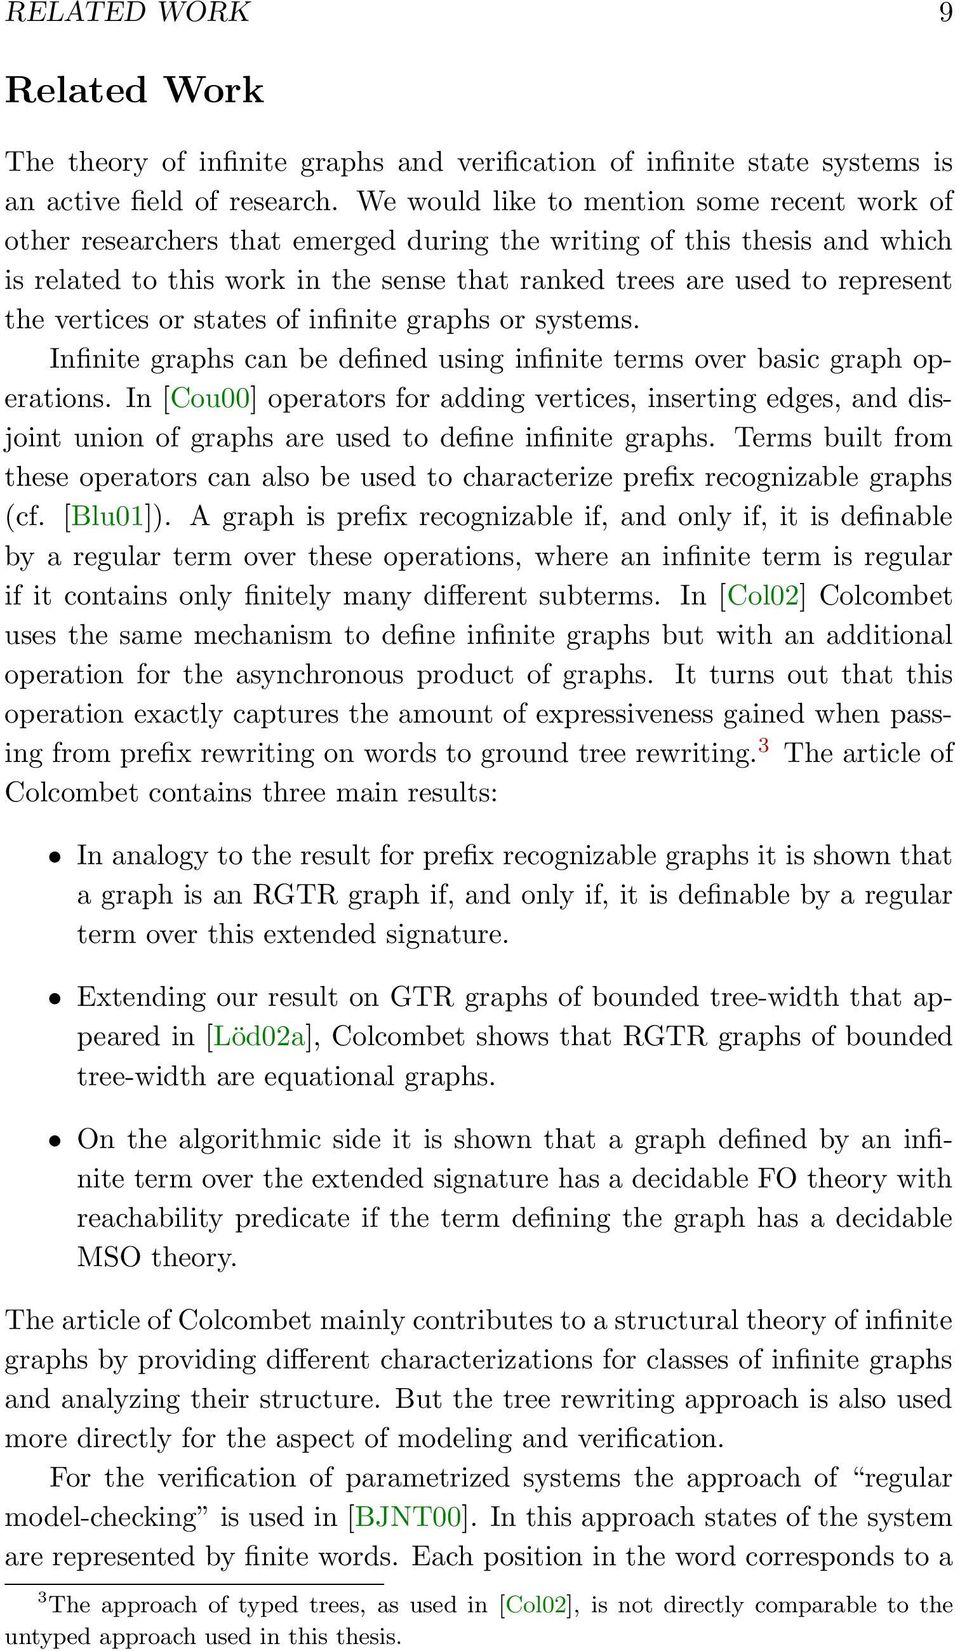 can be defined using infinite terms over basic graph operations In [Cou00] operators for adding vertices, inserting edges, and disjoint union of graphs are used to define infinite graphs Terms built